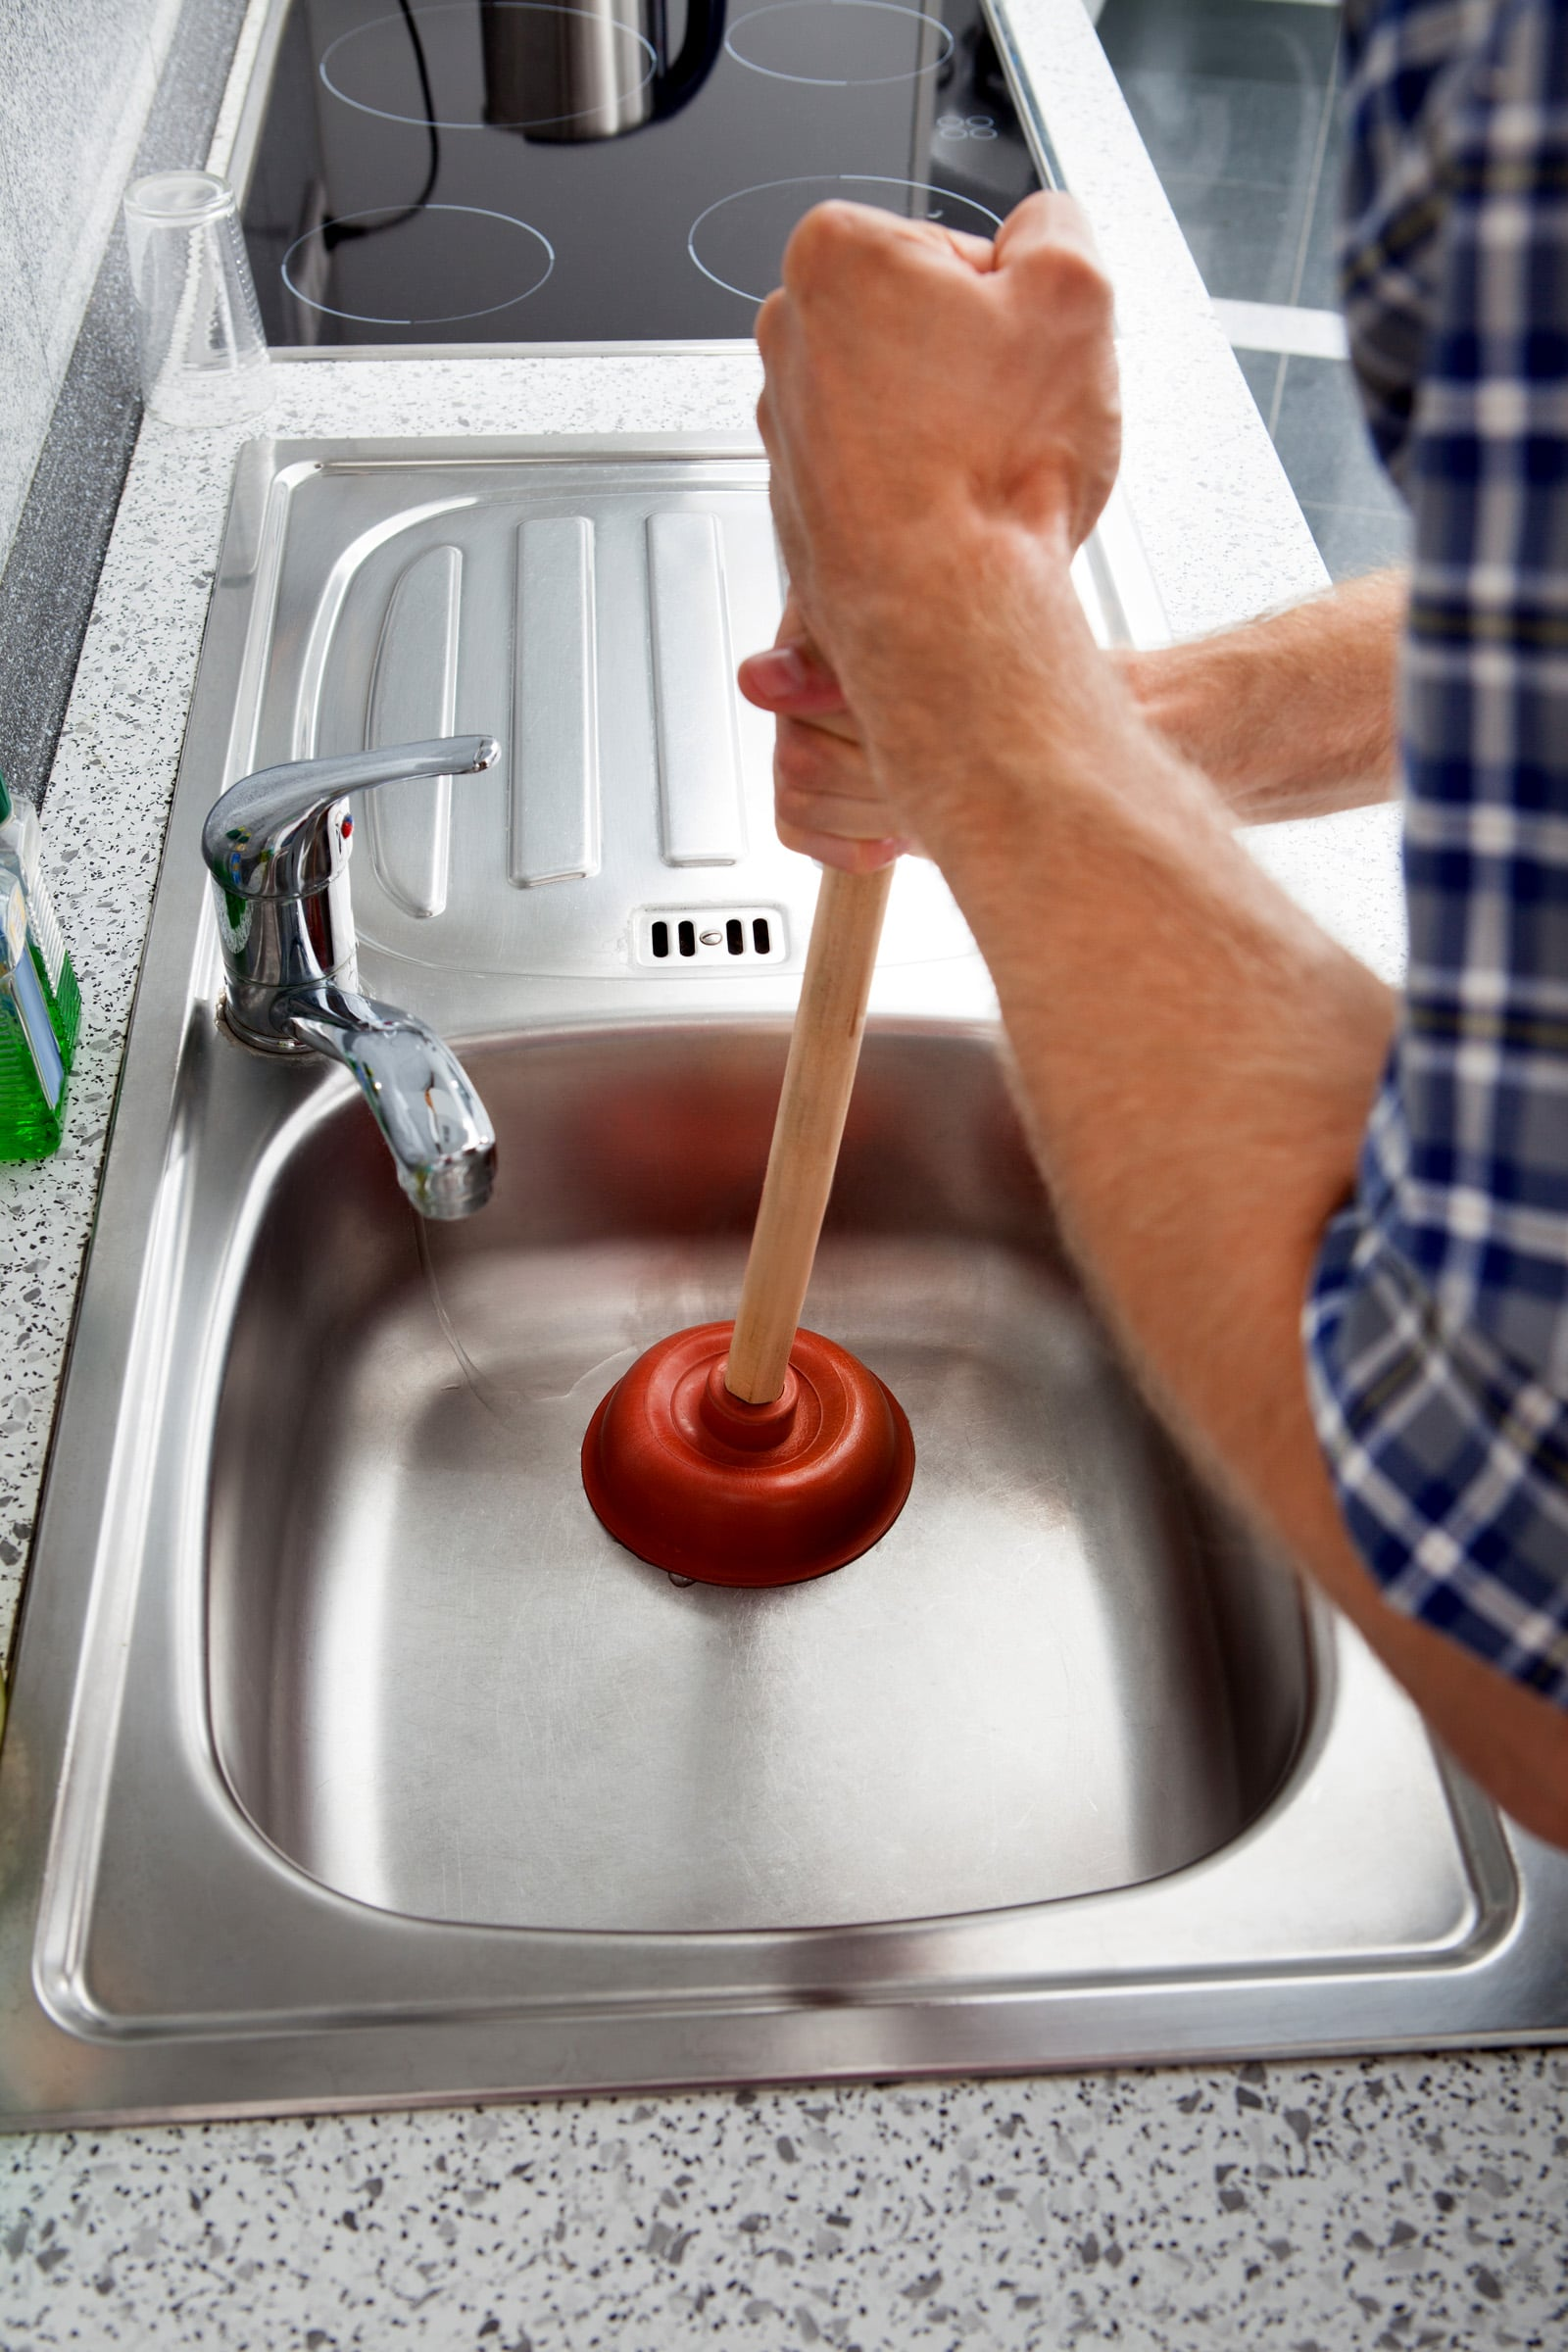 kitchen drain clog latest gadgets a clogged sink has many causes are avoidable